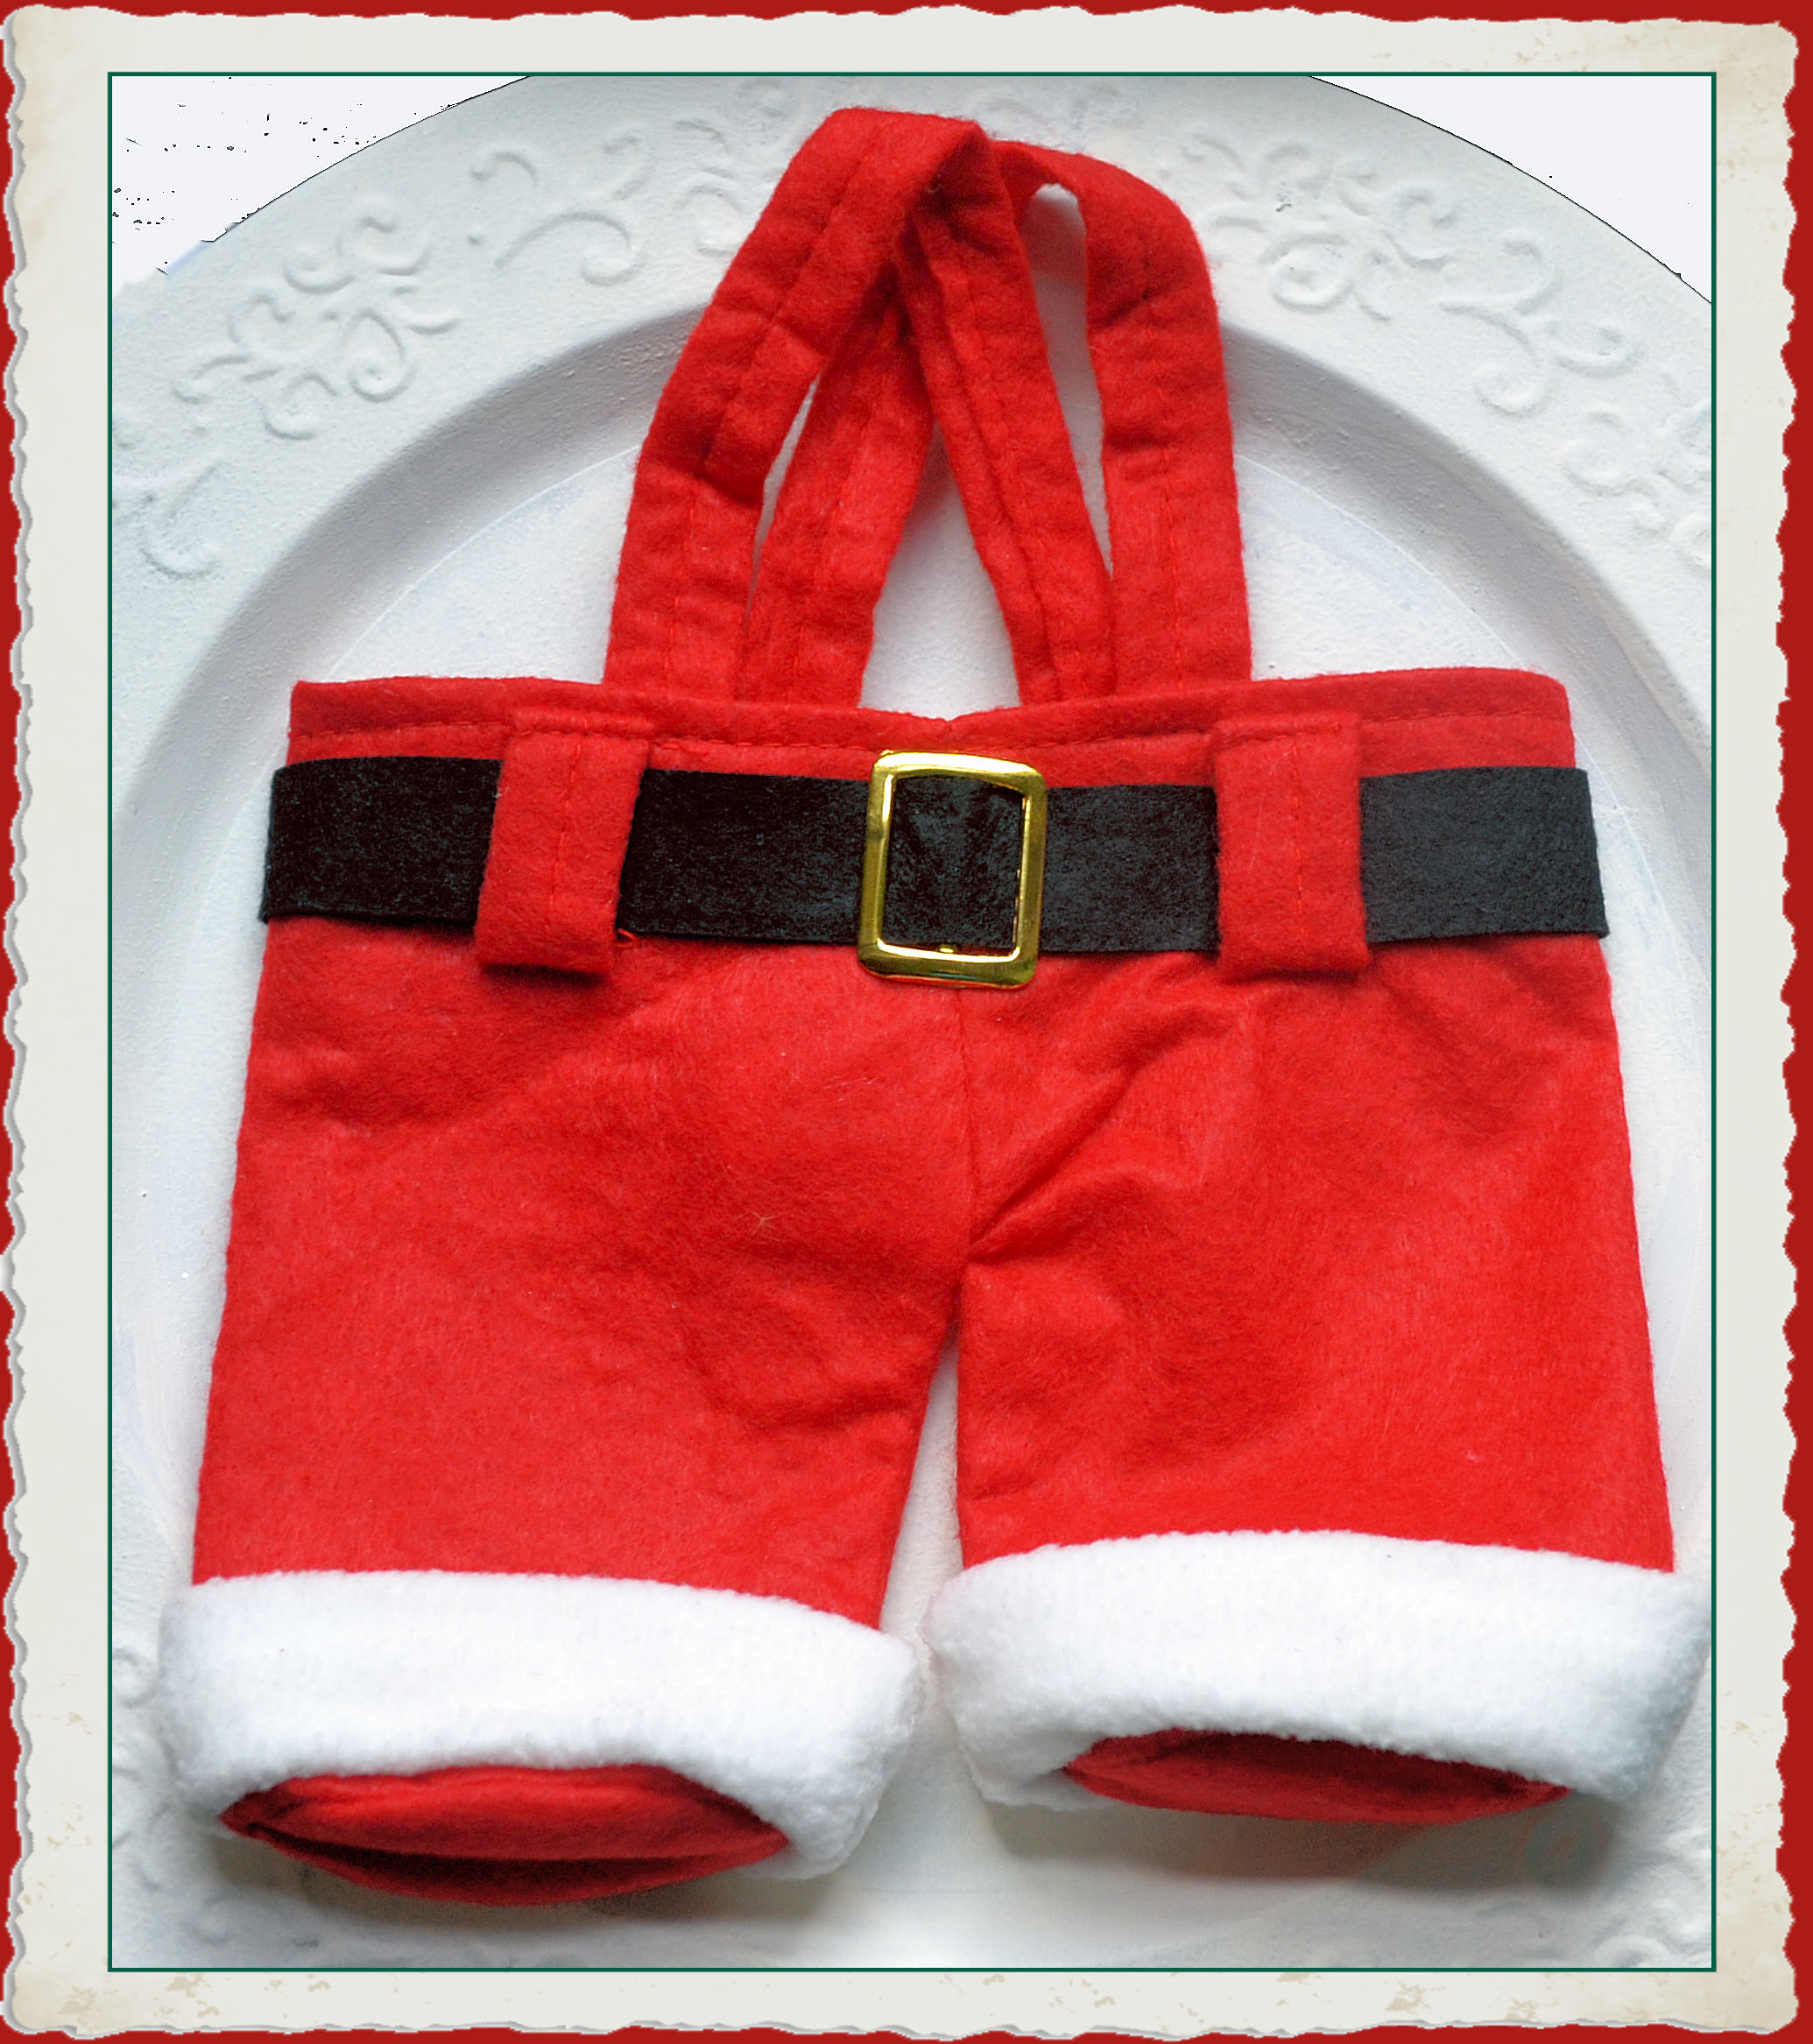 da-1-santa-britches-gift-bag-8267687114-framed.jpg